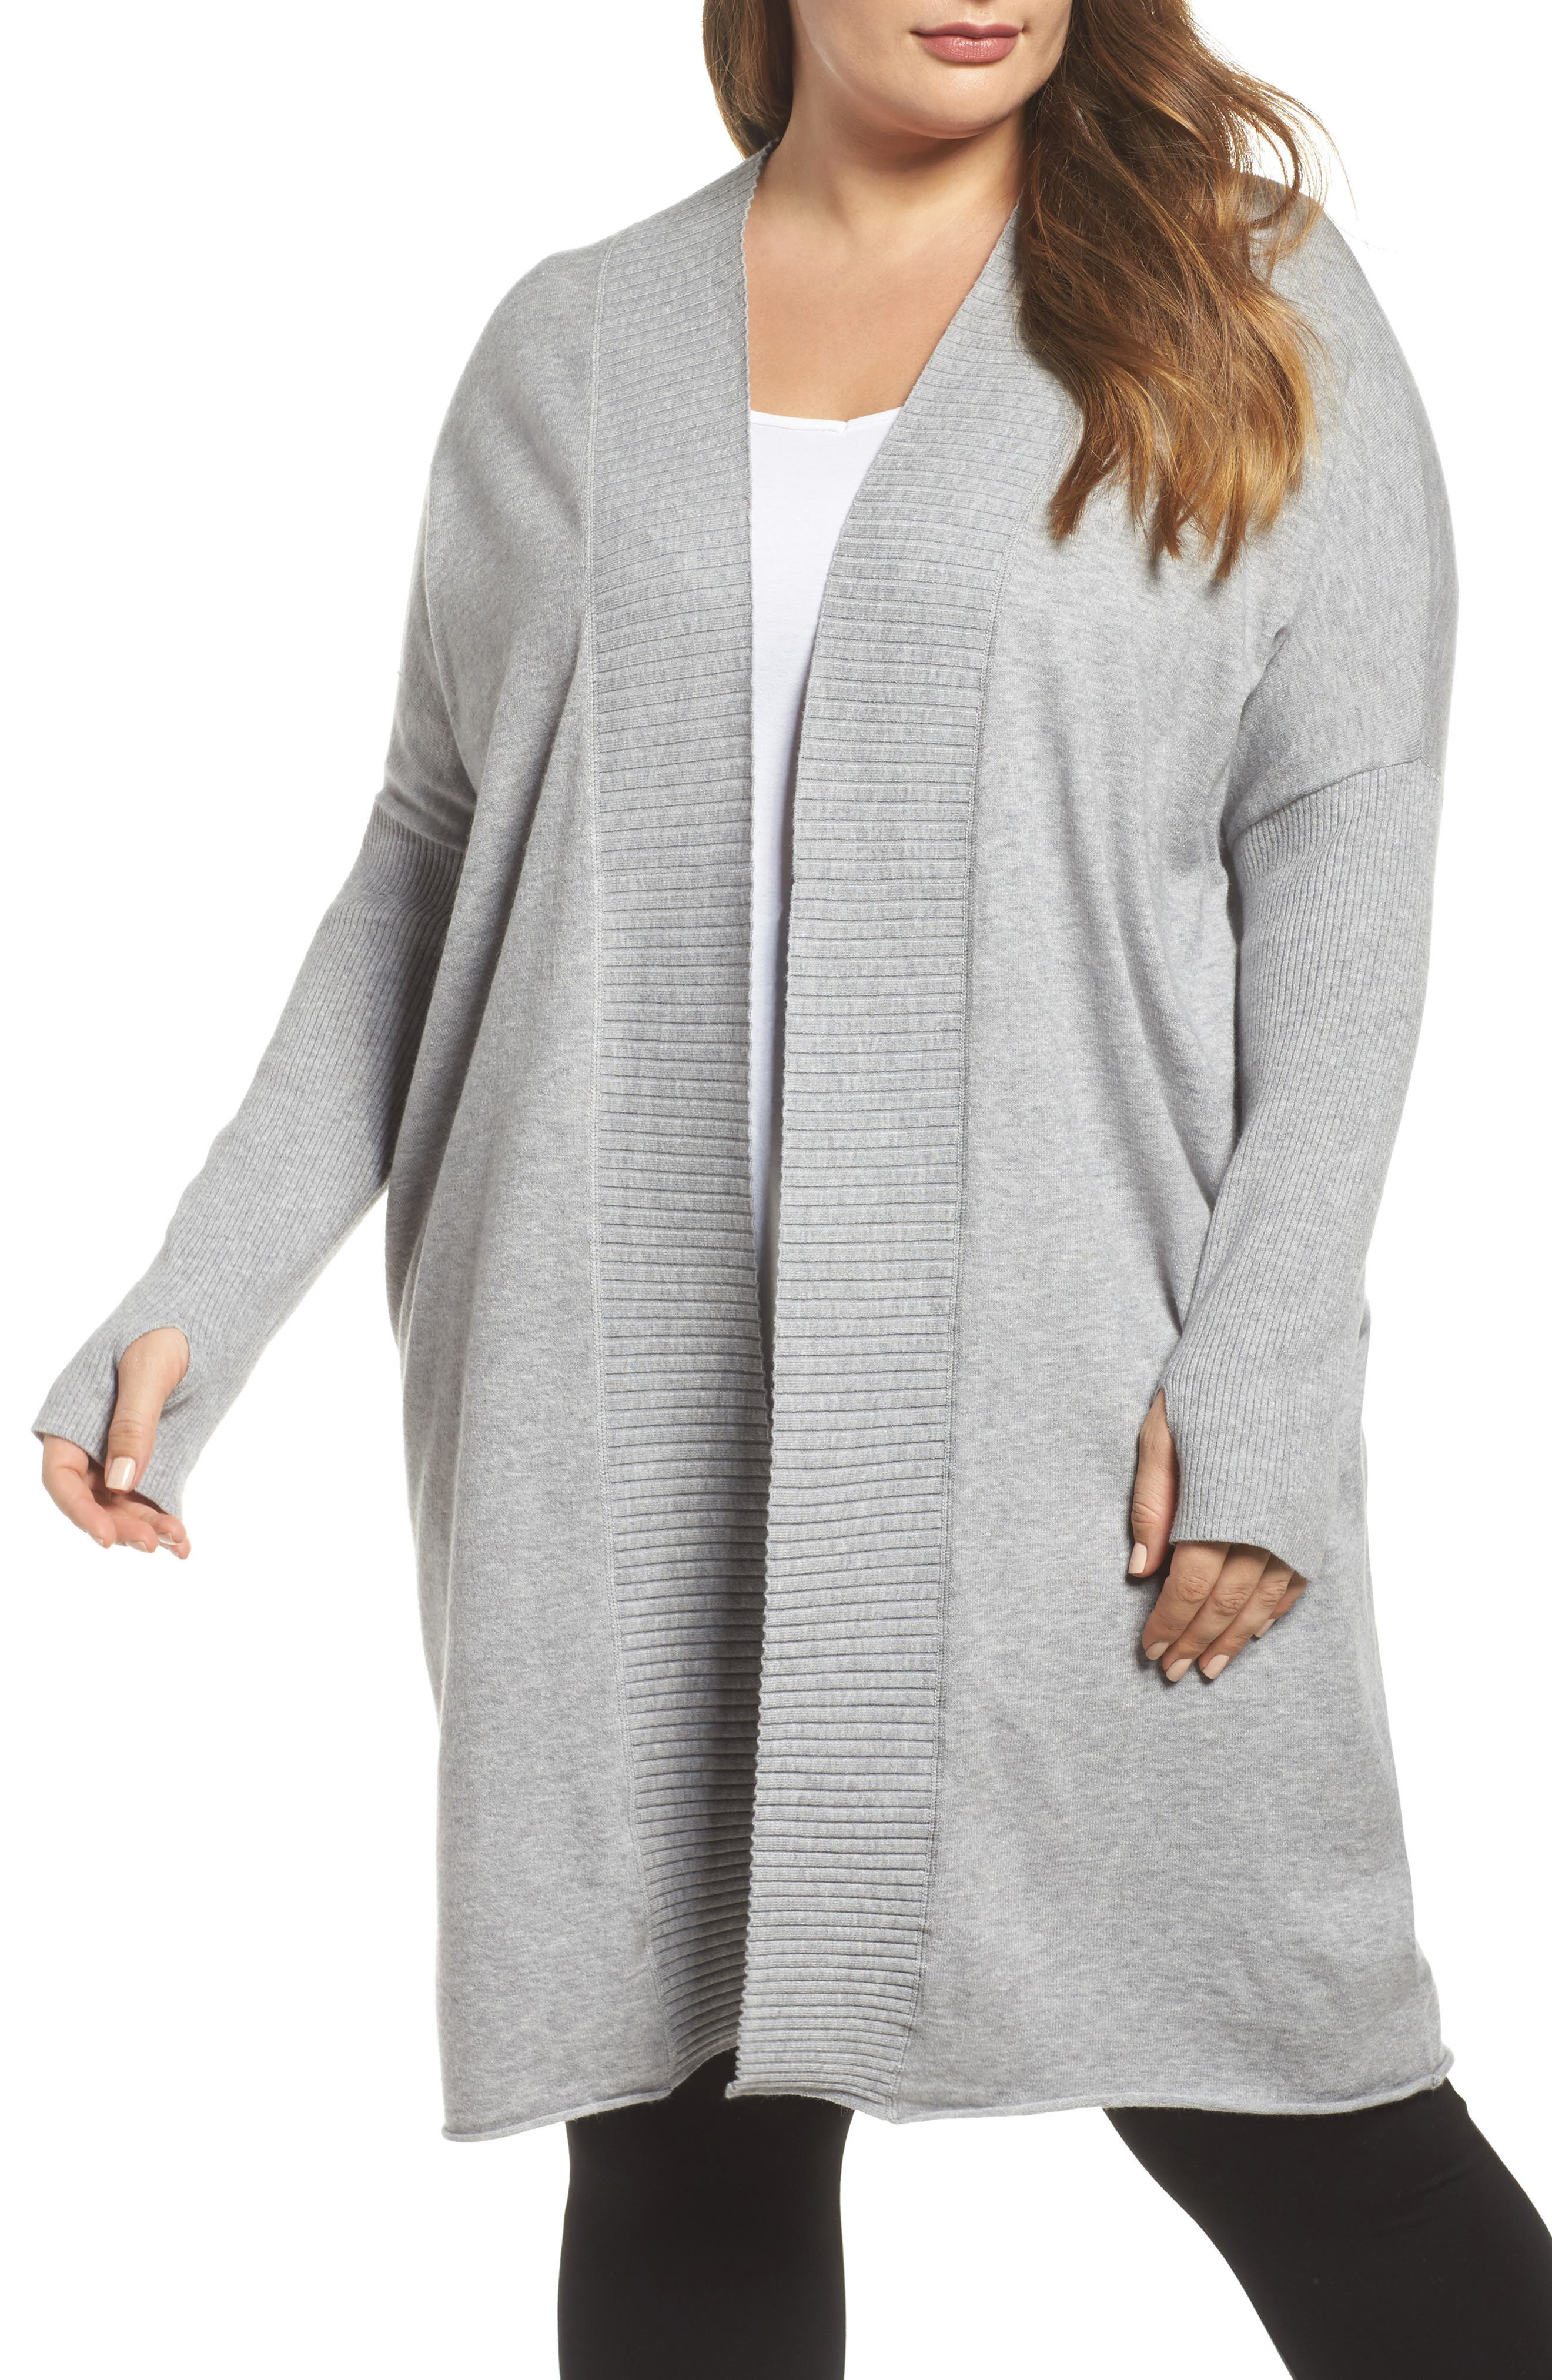 Off-Duty Long Open Front Cardigan,                             Main thumbnail 1, color,                             Grey Heather